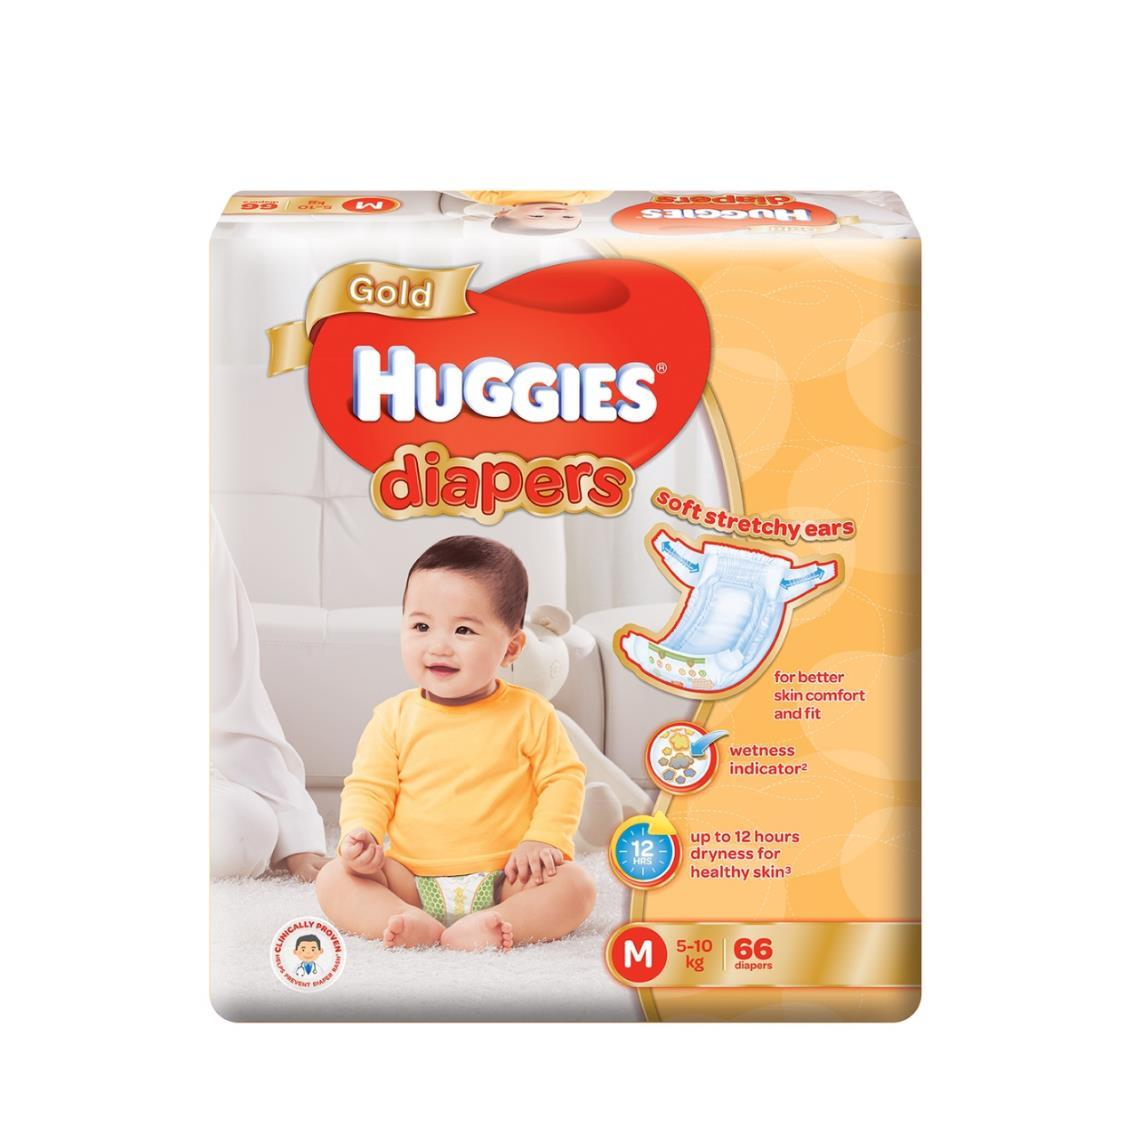 Huggies Gold M 66s